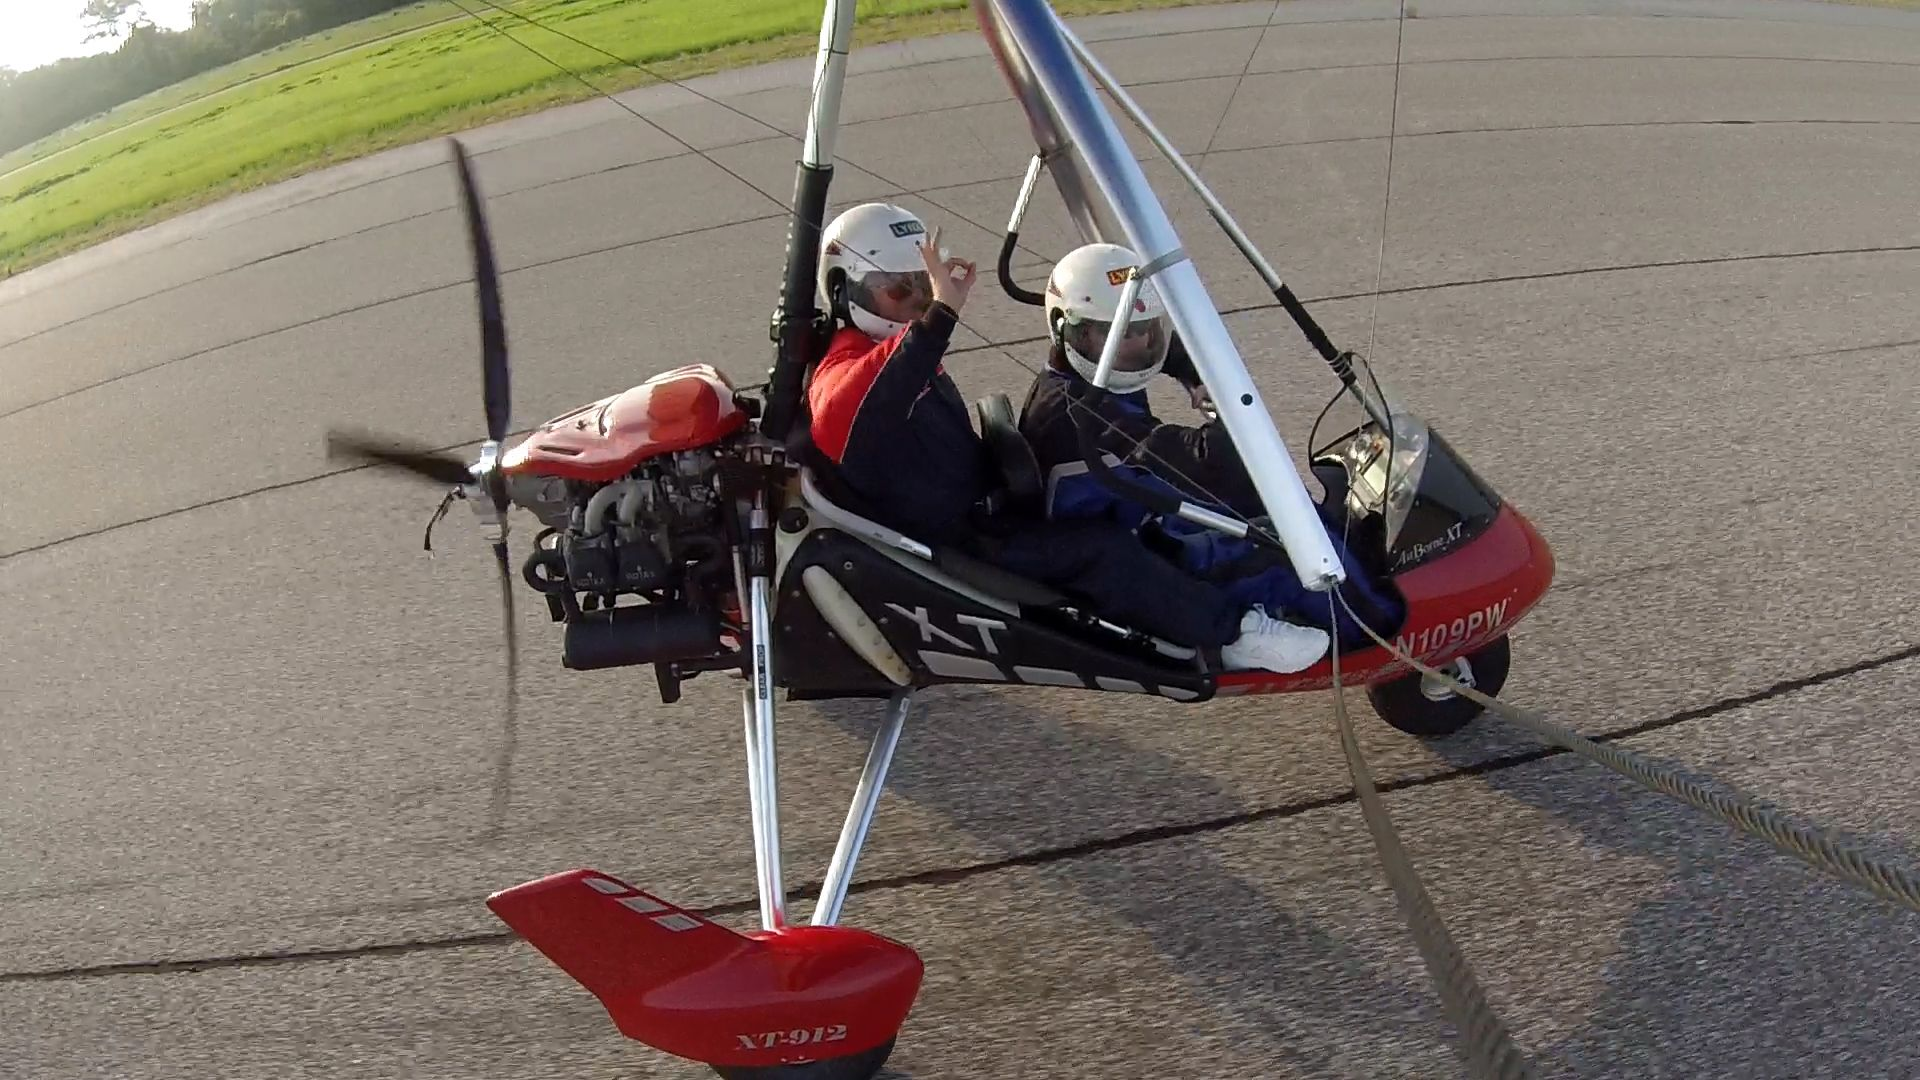 Thomas Robertson giving his seal of approval!  #bucketlist #fun #epic #flying #adventure #thrill #seekers #florida #sports #outdoors